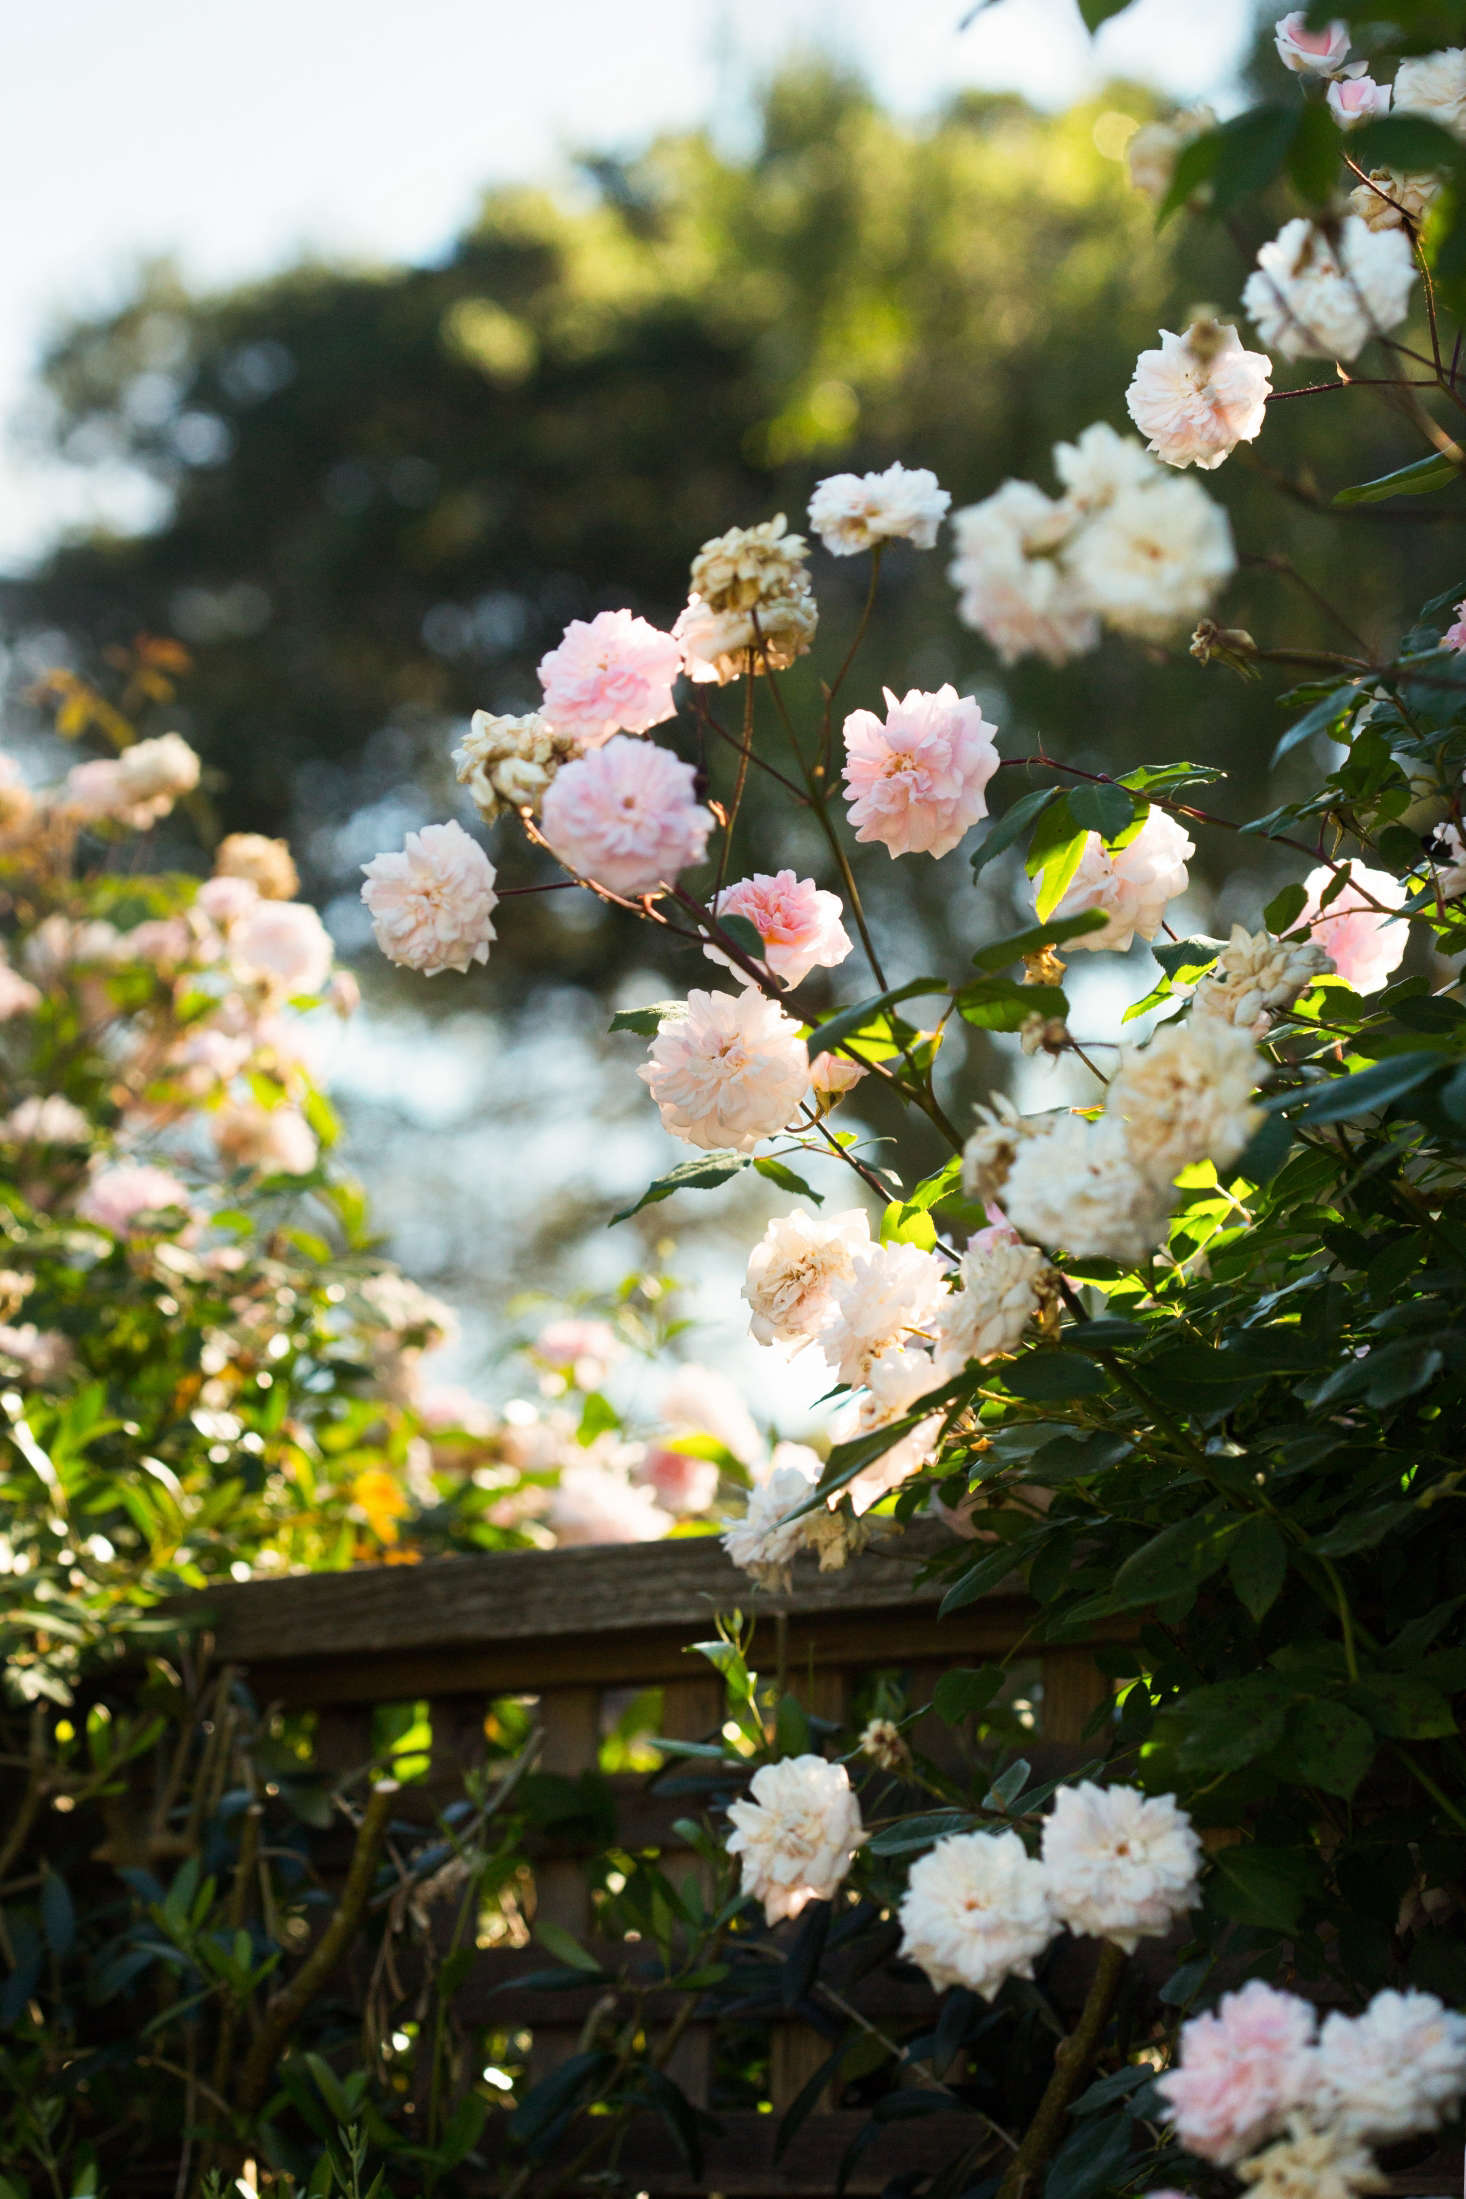 New Dawn climbing roses, a staple in cottage gardens since their introduction in 30, easily achieve heights of  or more feet. They have pink buds and then, as they open and mature, become paler until they are barely not-white.